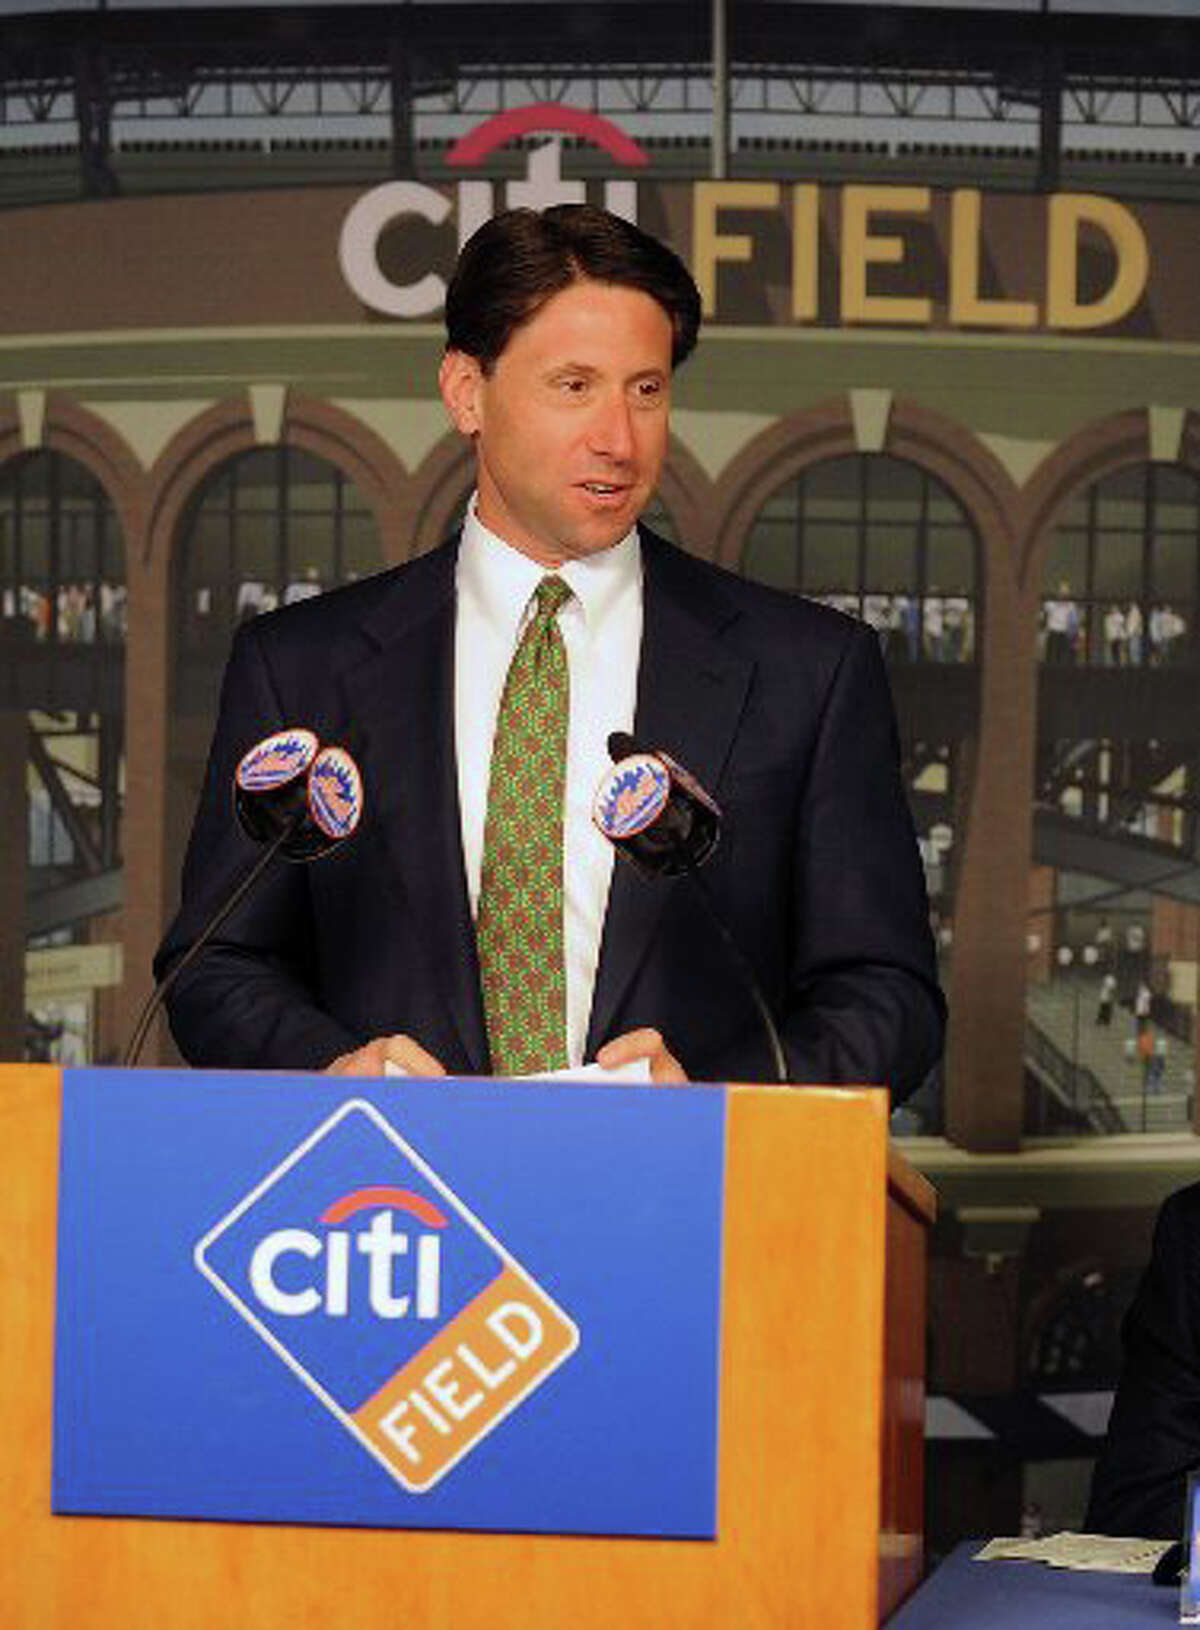 Greenwich resident and Mets COO Jeff Wilpon has been sued by a team executive who says she was fired for having a baby out of wedlock.